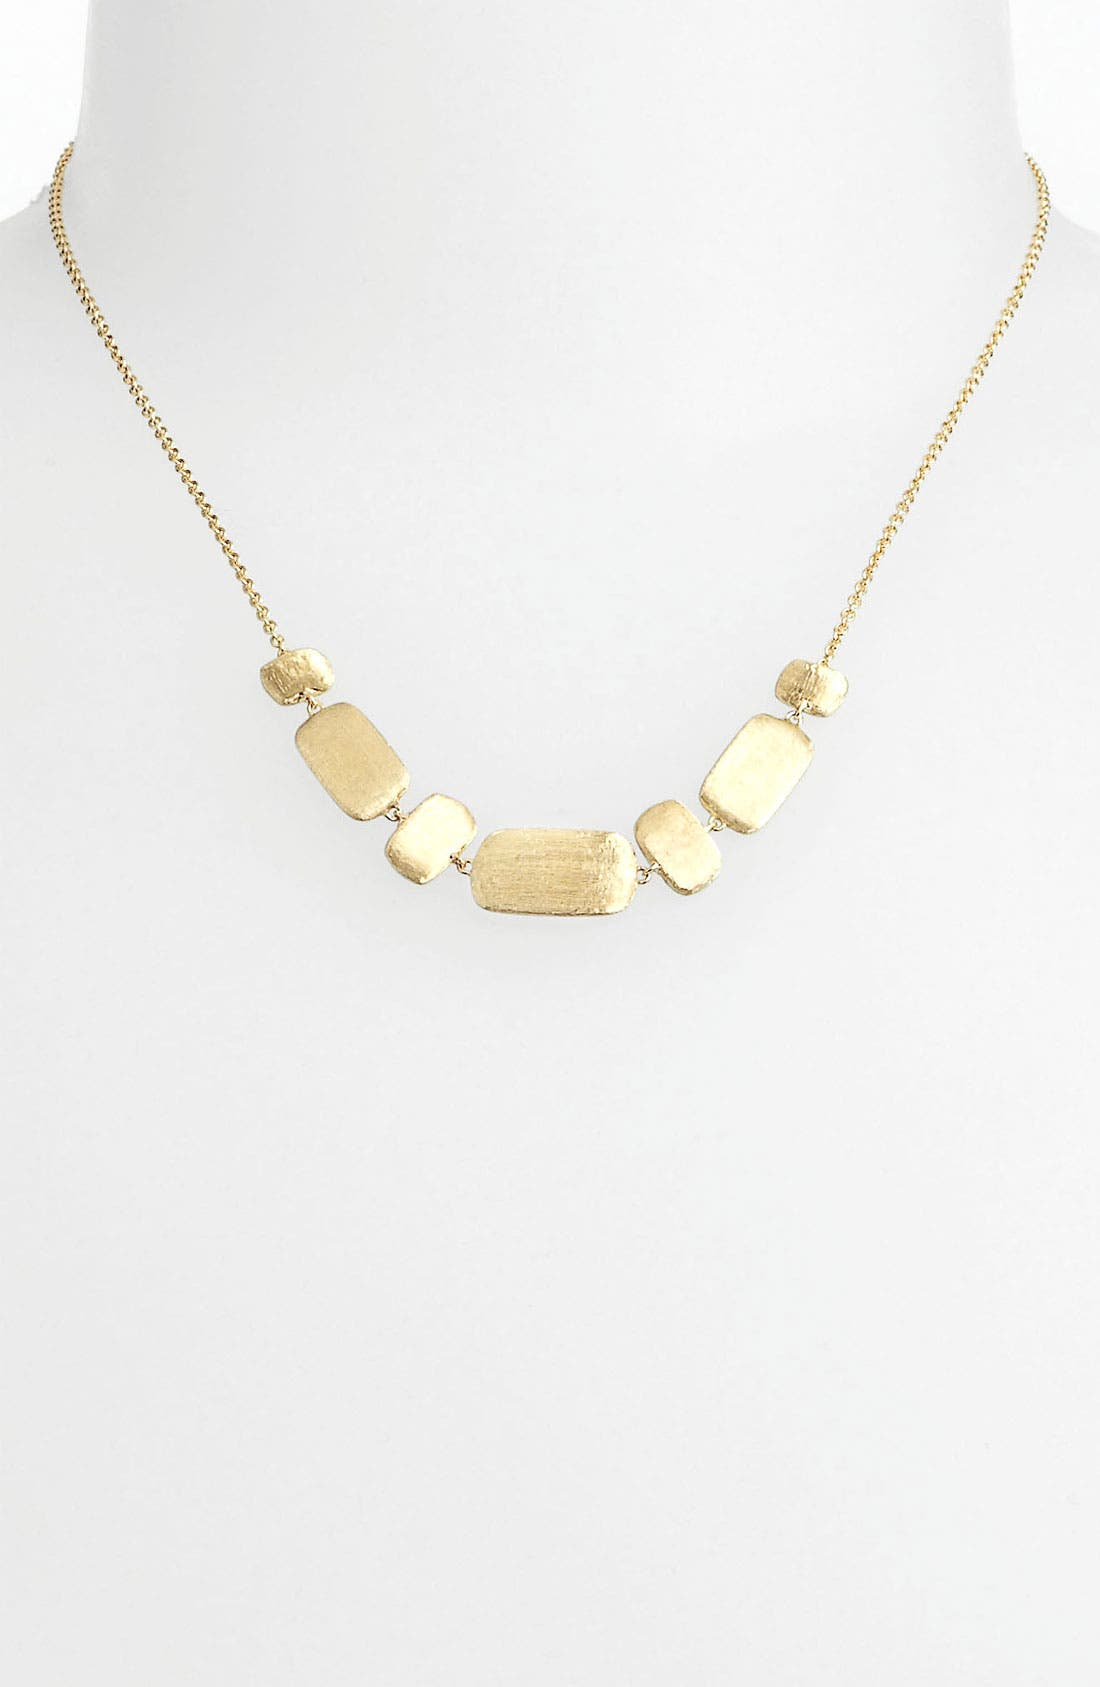 Main Image - Marco Bicego 'Murano' Gold Necklace